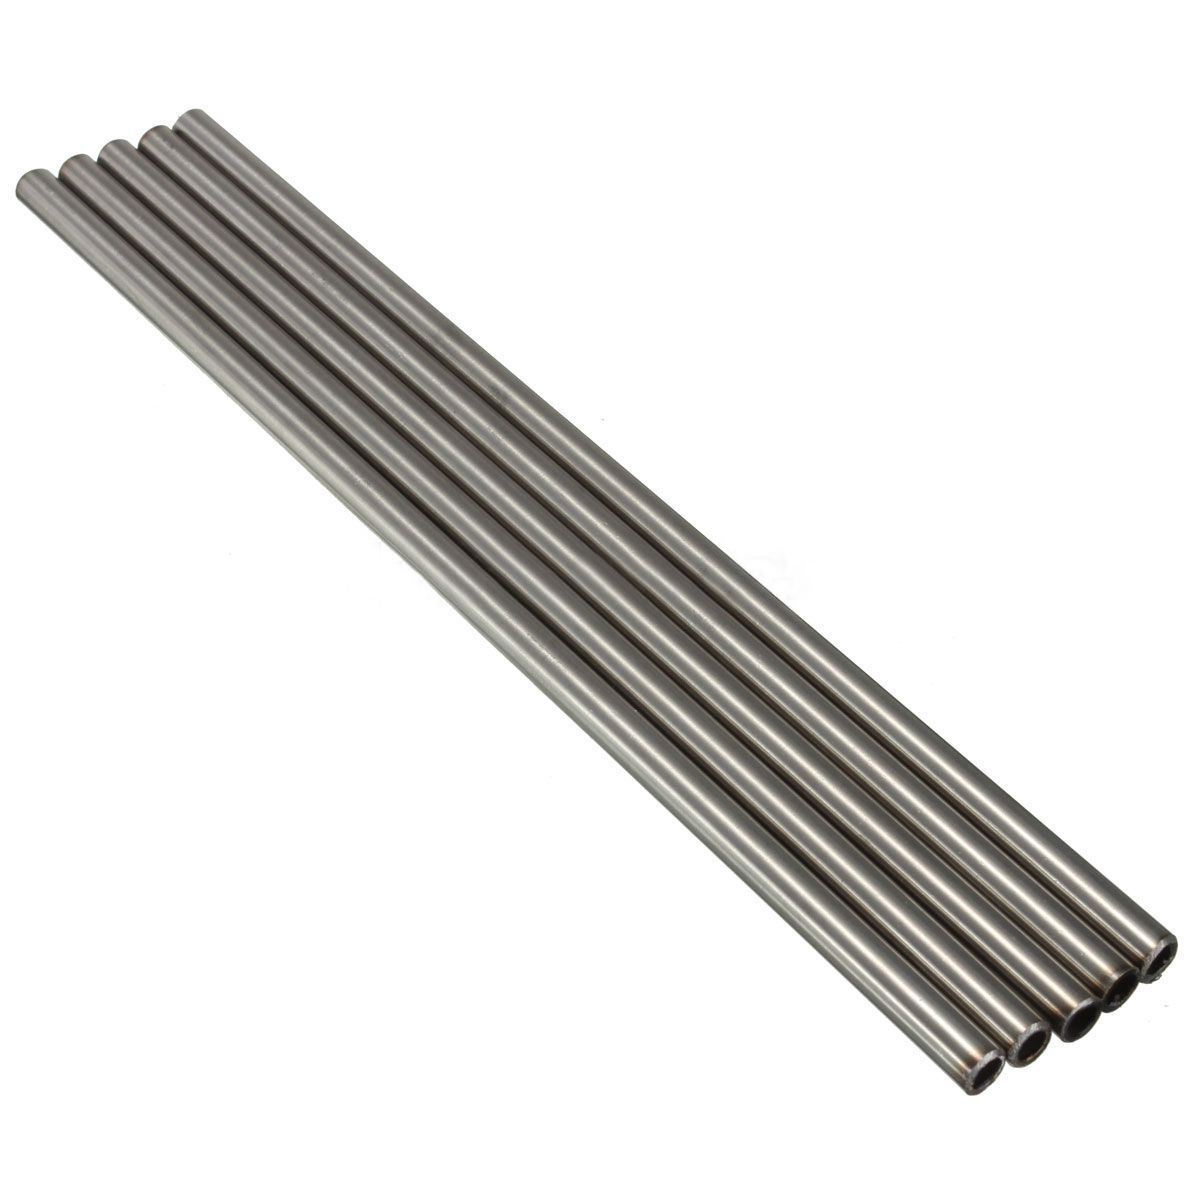 1pc 2pcs Silver 304 Stainless Steel Capillary Tube